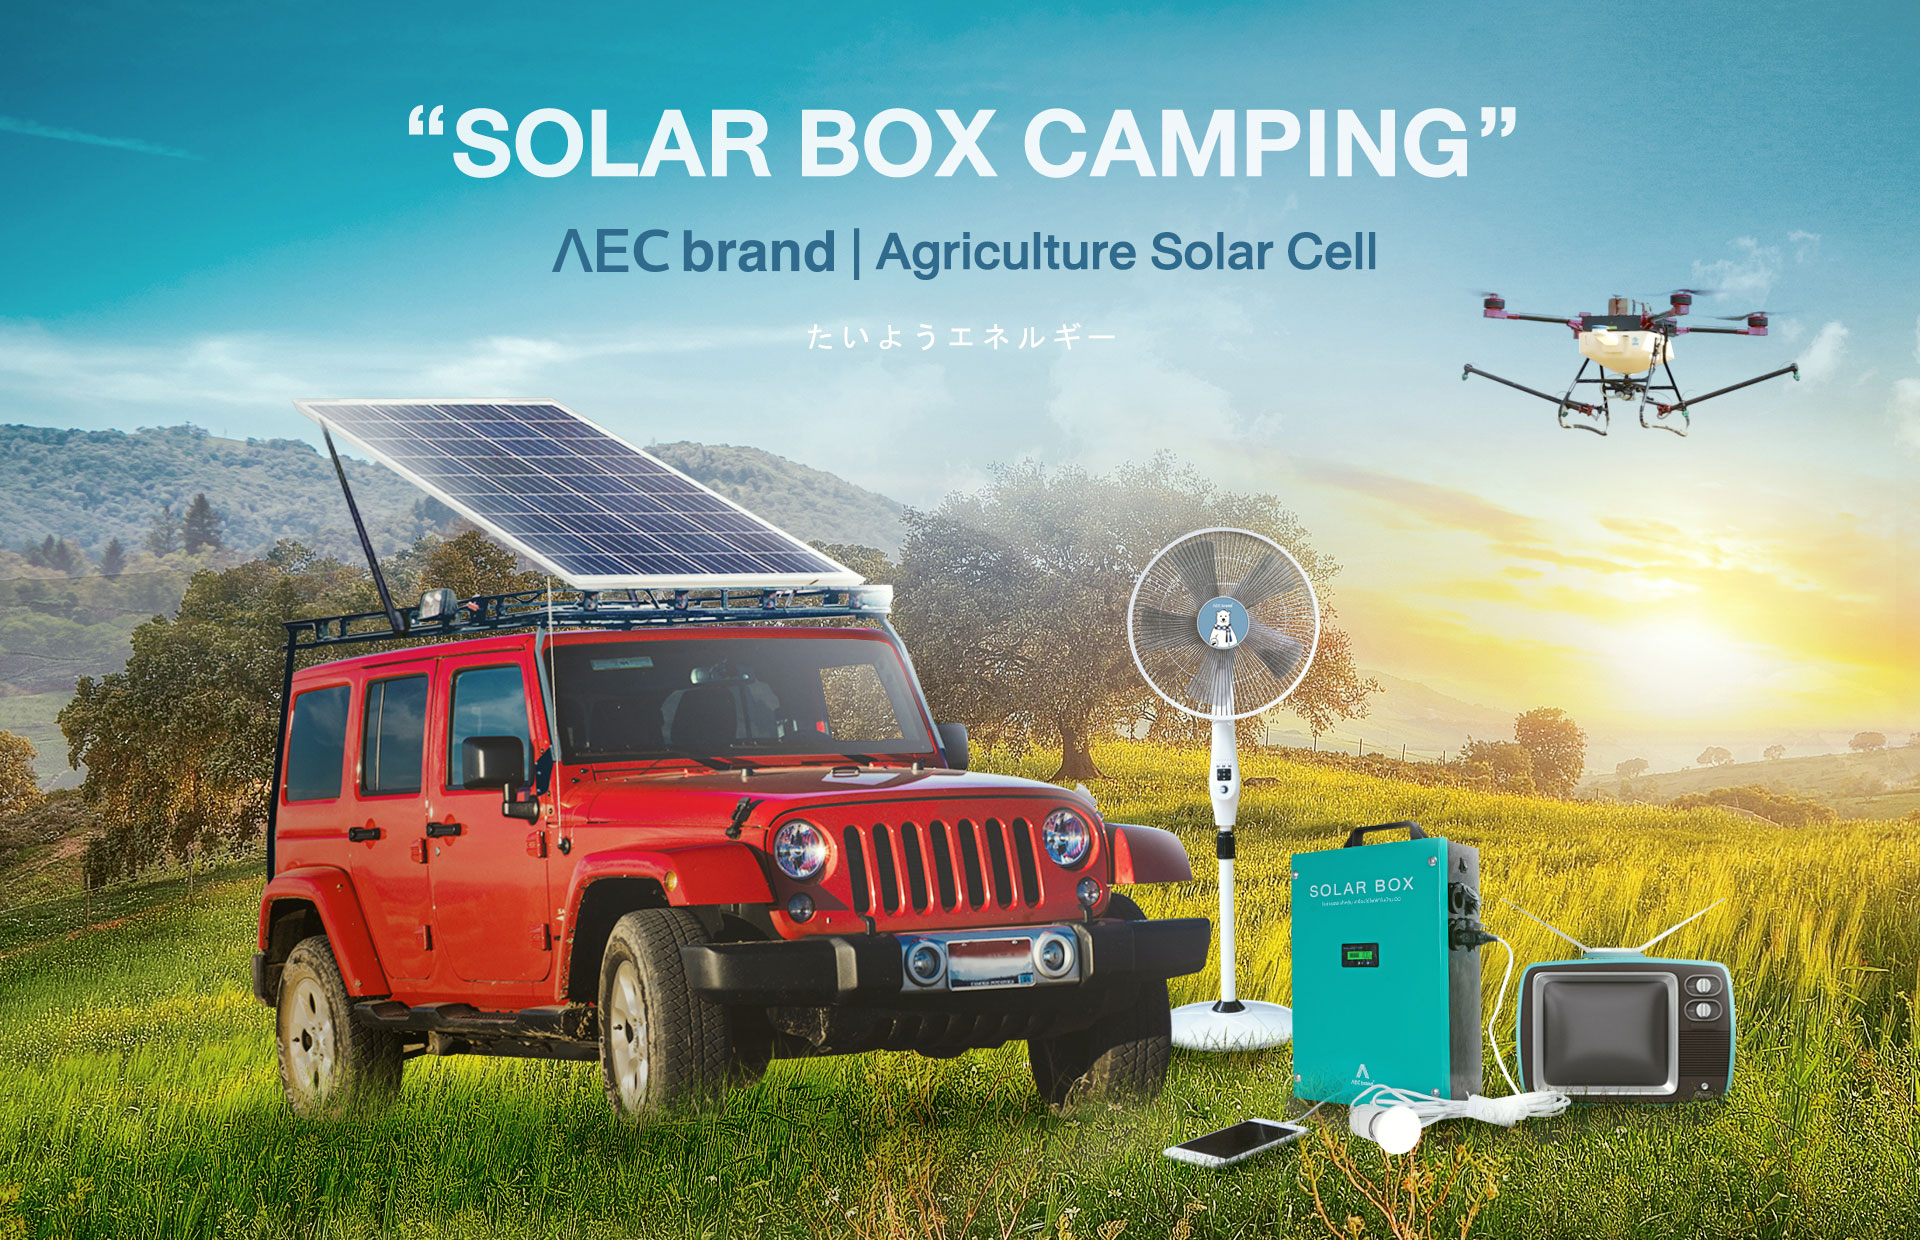 AEC-brand-Agriculture-Solar-Cell